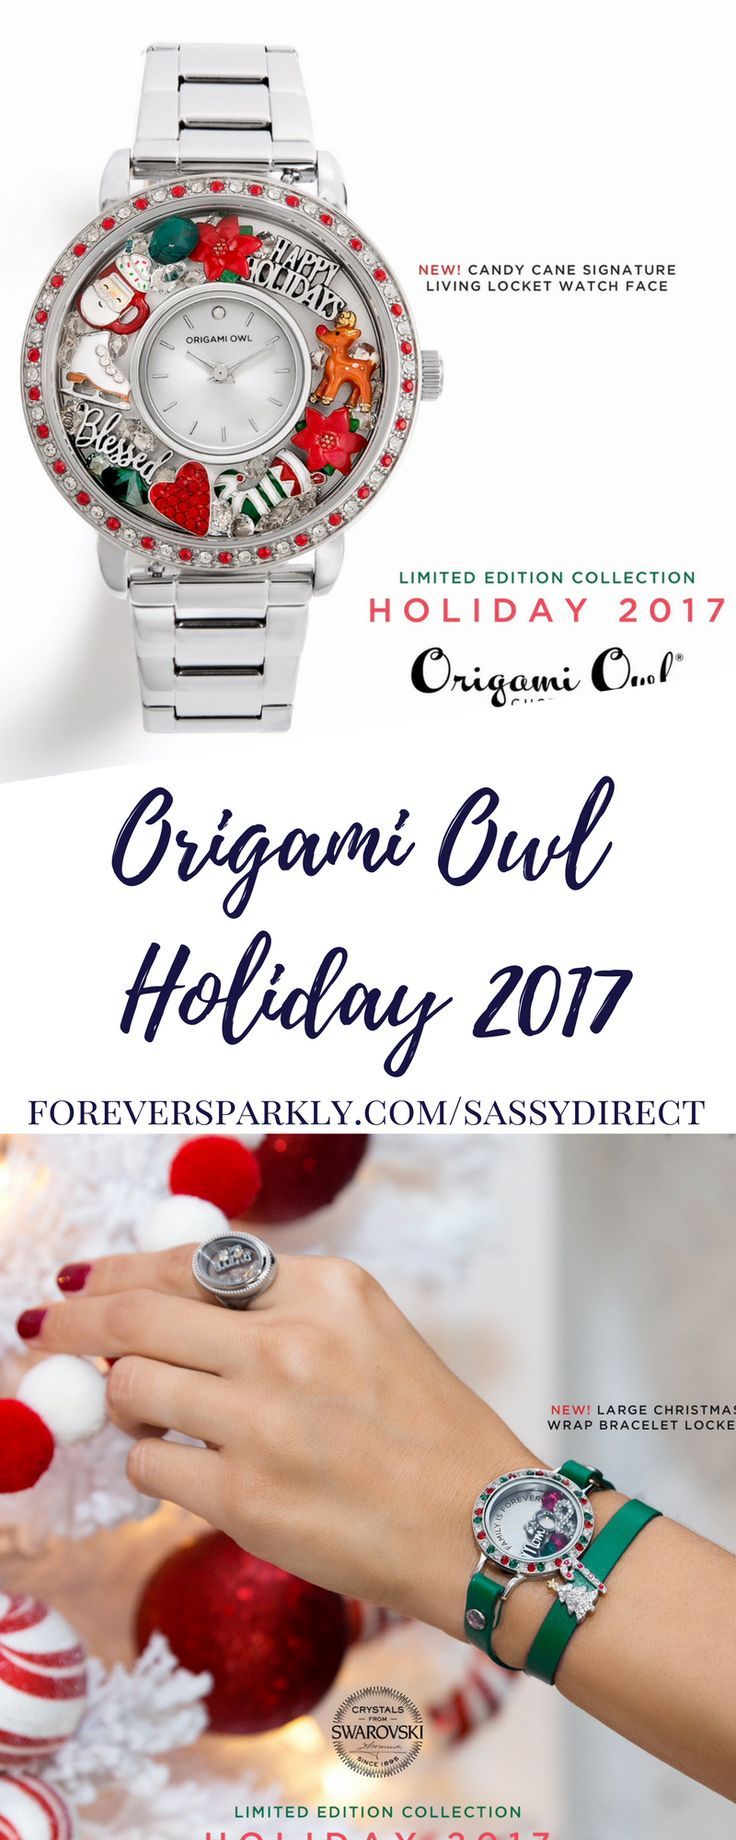 45 best origami owl holiday 2017 images on pinterest origami owl read all about the origami owl holiday collection for 2017 and the brand new limited edition holiday themed charms click for details on how to jeuxipadfo Gallery